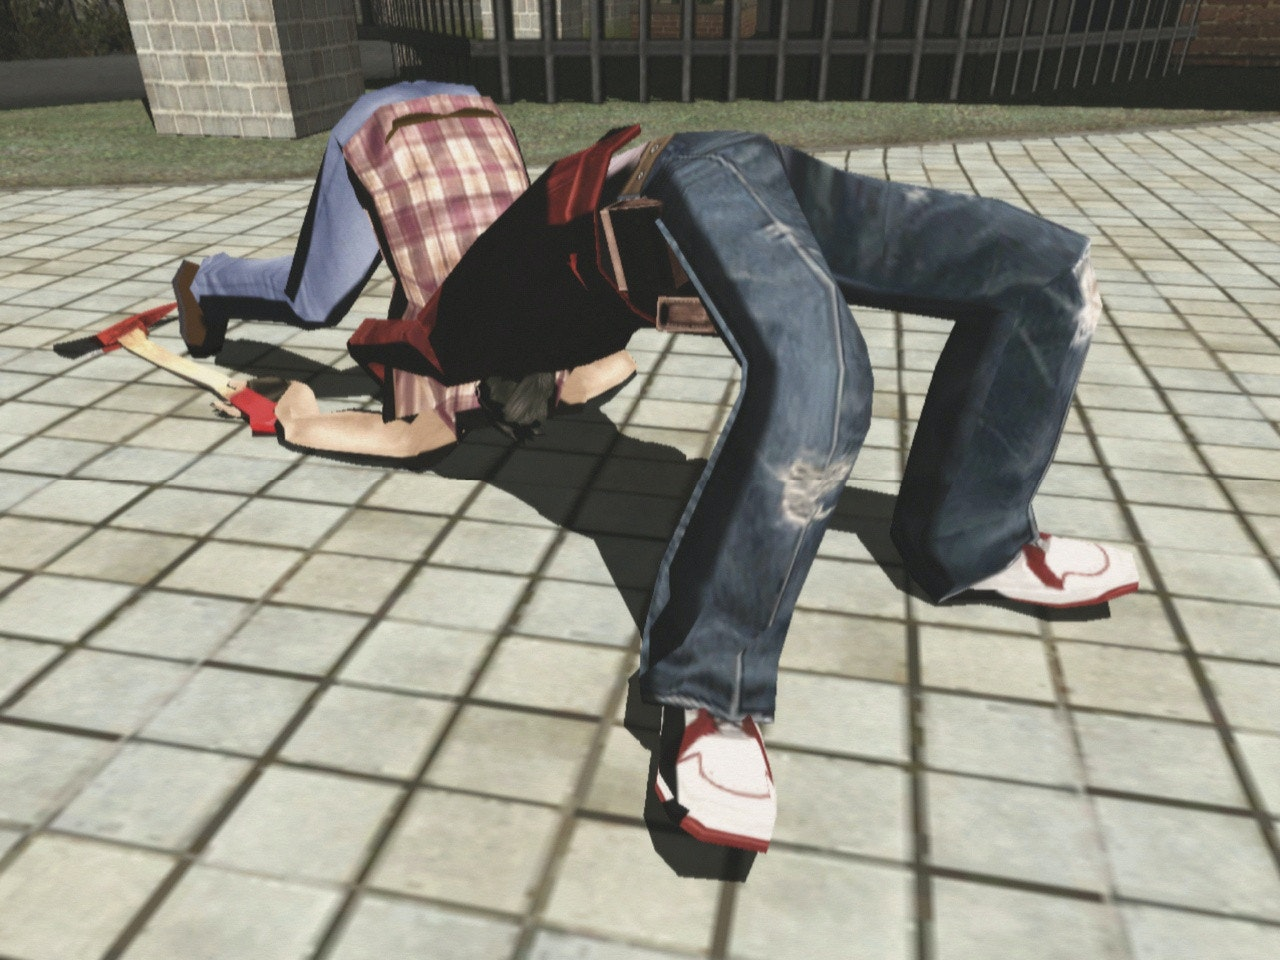 Travis Touchdown performs a suplex in 'No More Heroes'.